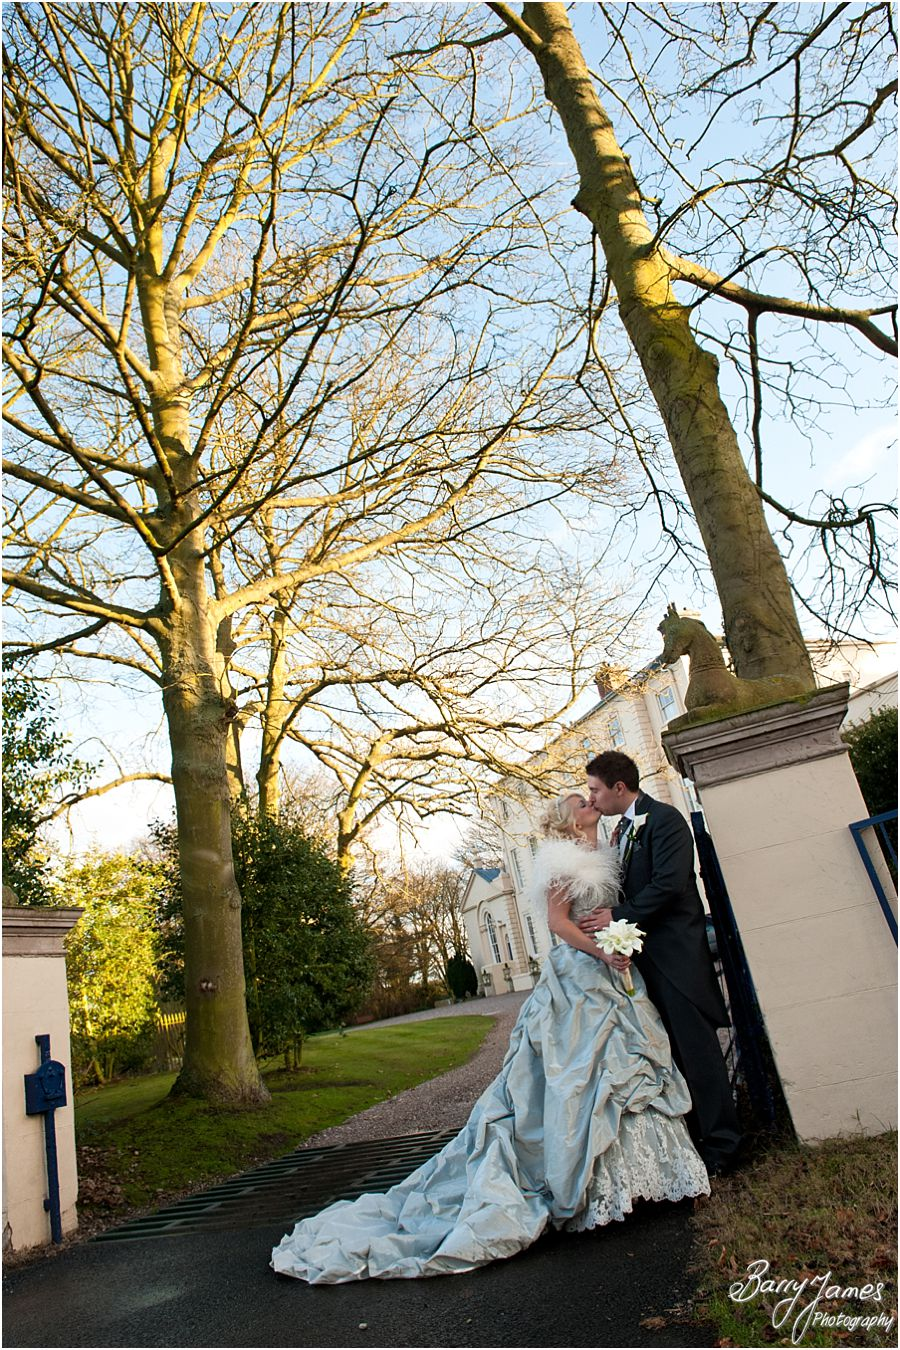 Unobtrusive candid wedding in a perfect setting, Somerford Hall in Brewood by Award Winning Wedding Photographer Barry James